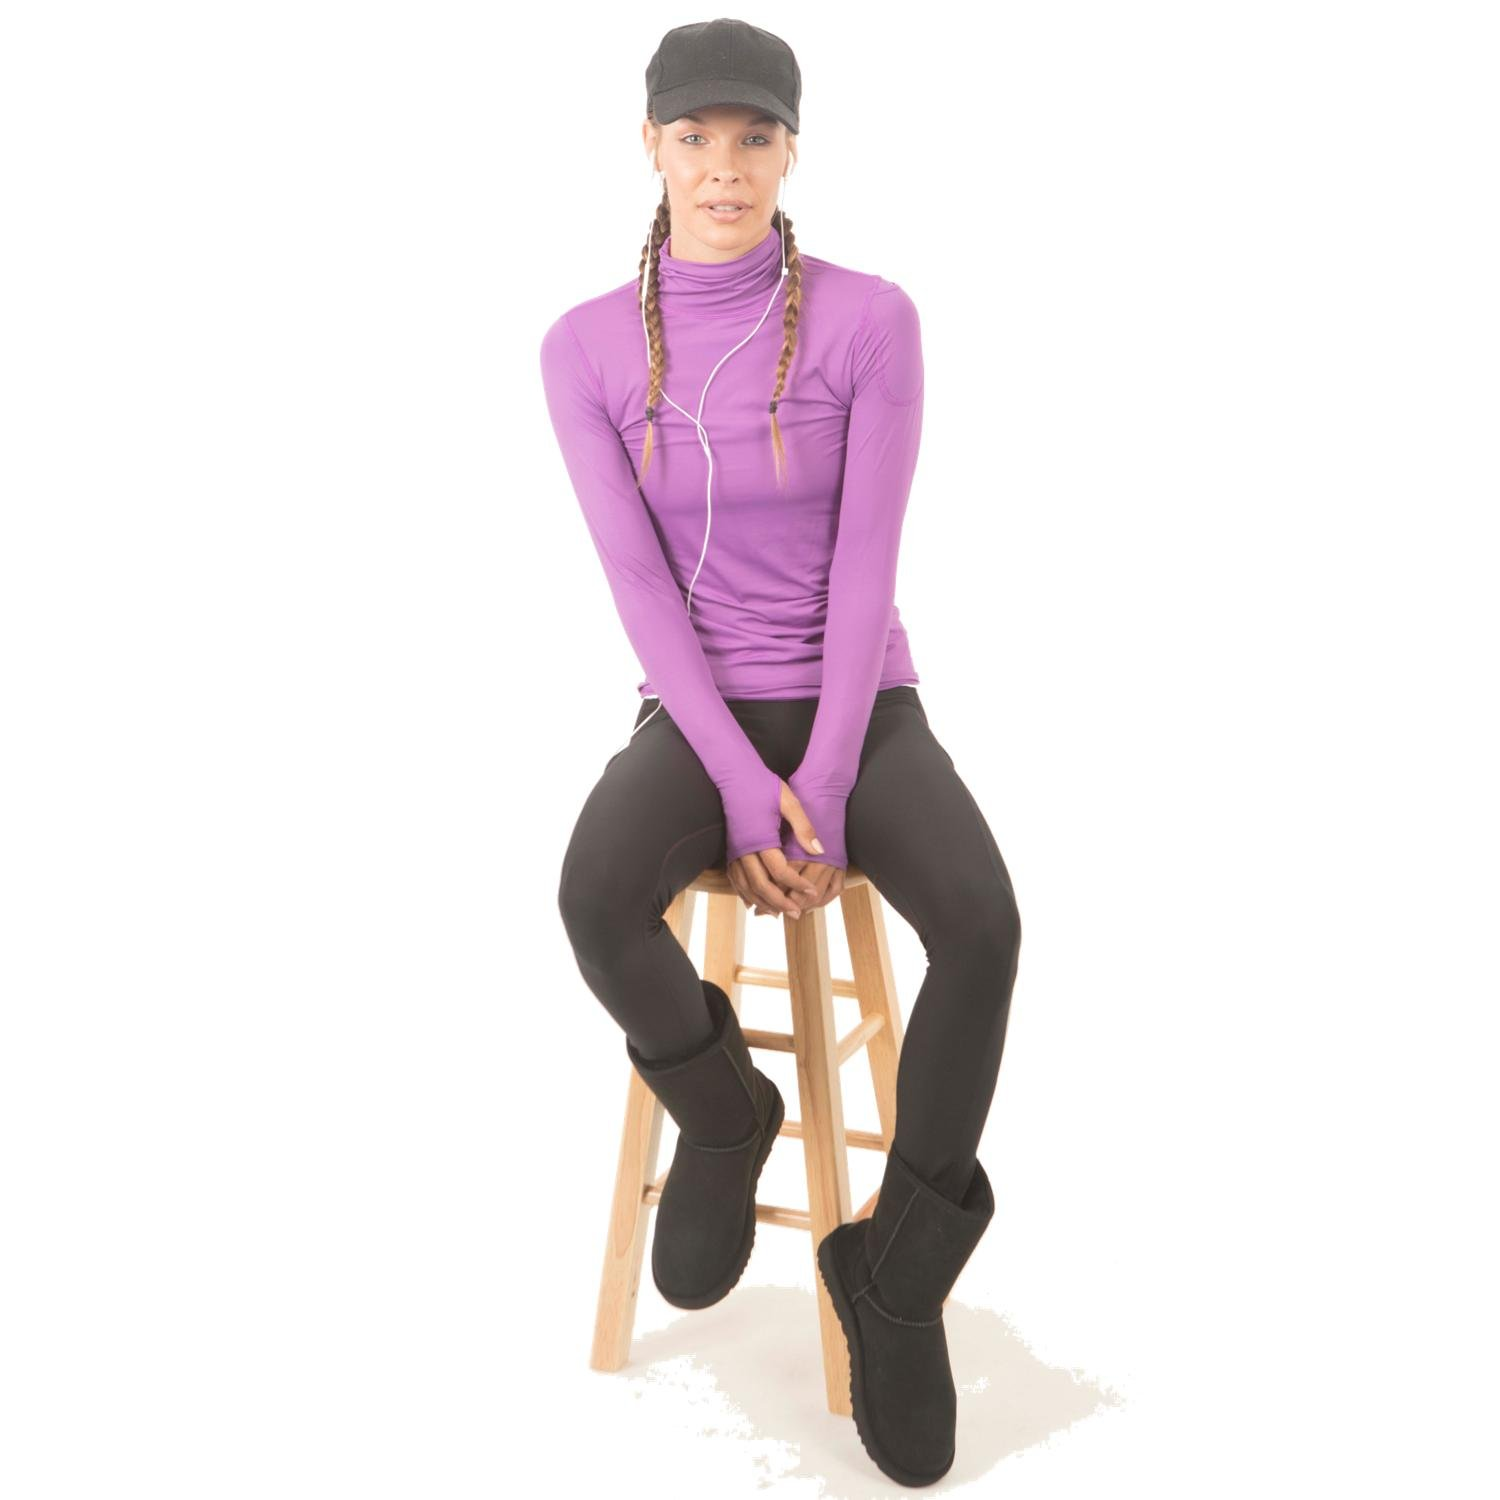 BloqUV Women's Sun-Protective Long-Sleeve Turtleneck T-Shirt, Purple (X-Small)